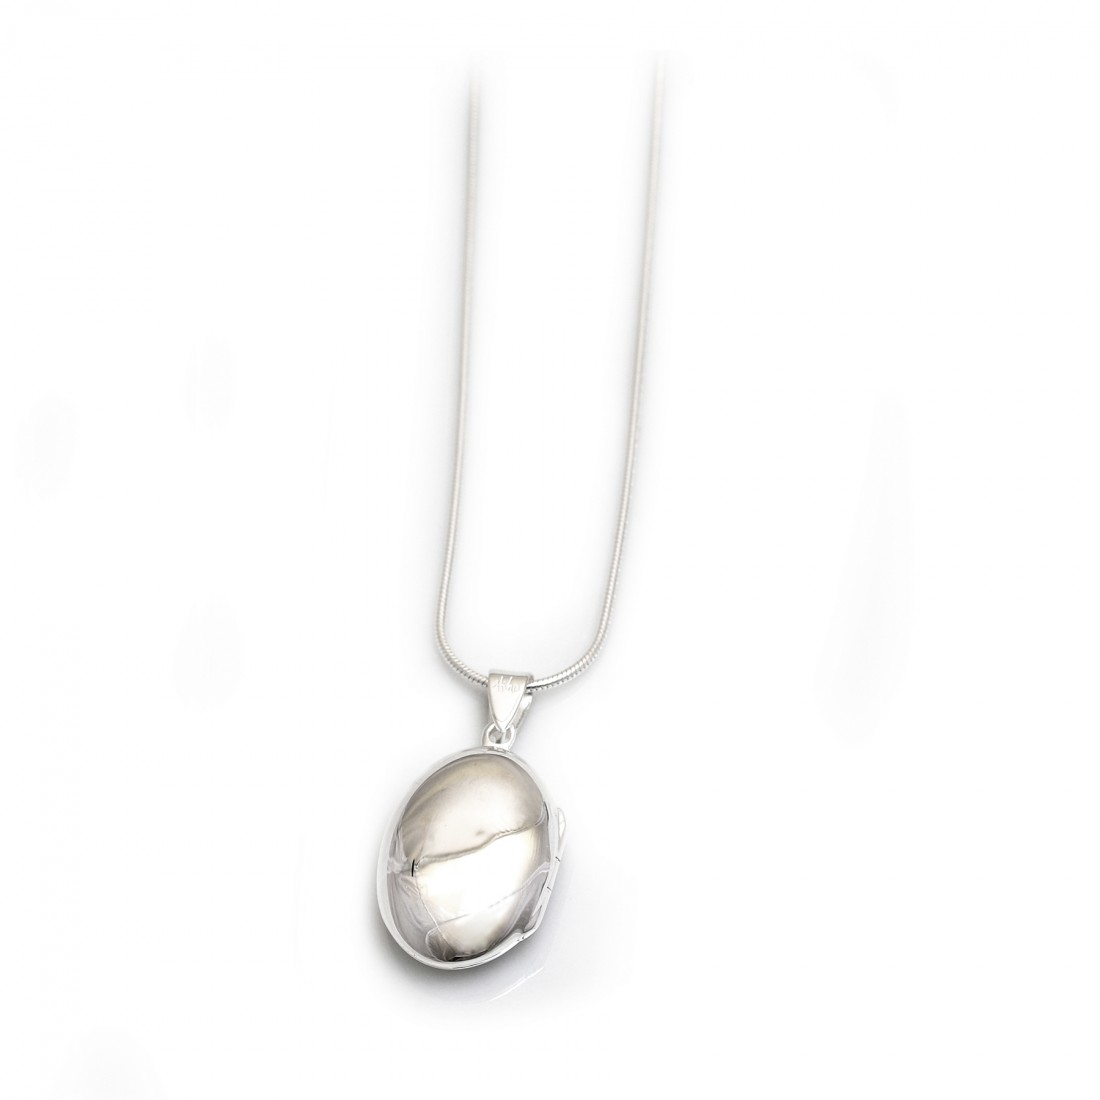 Sterling Silver Oval Locket With Snake Chain